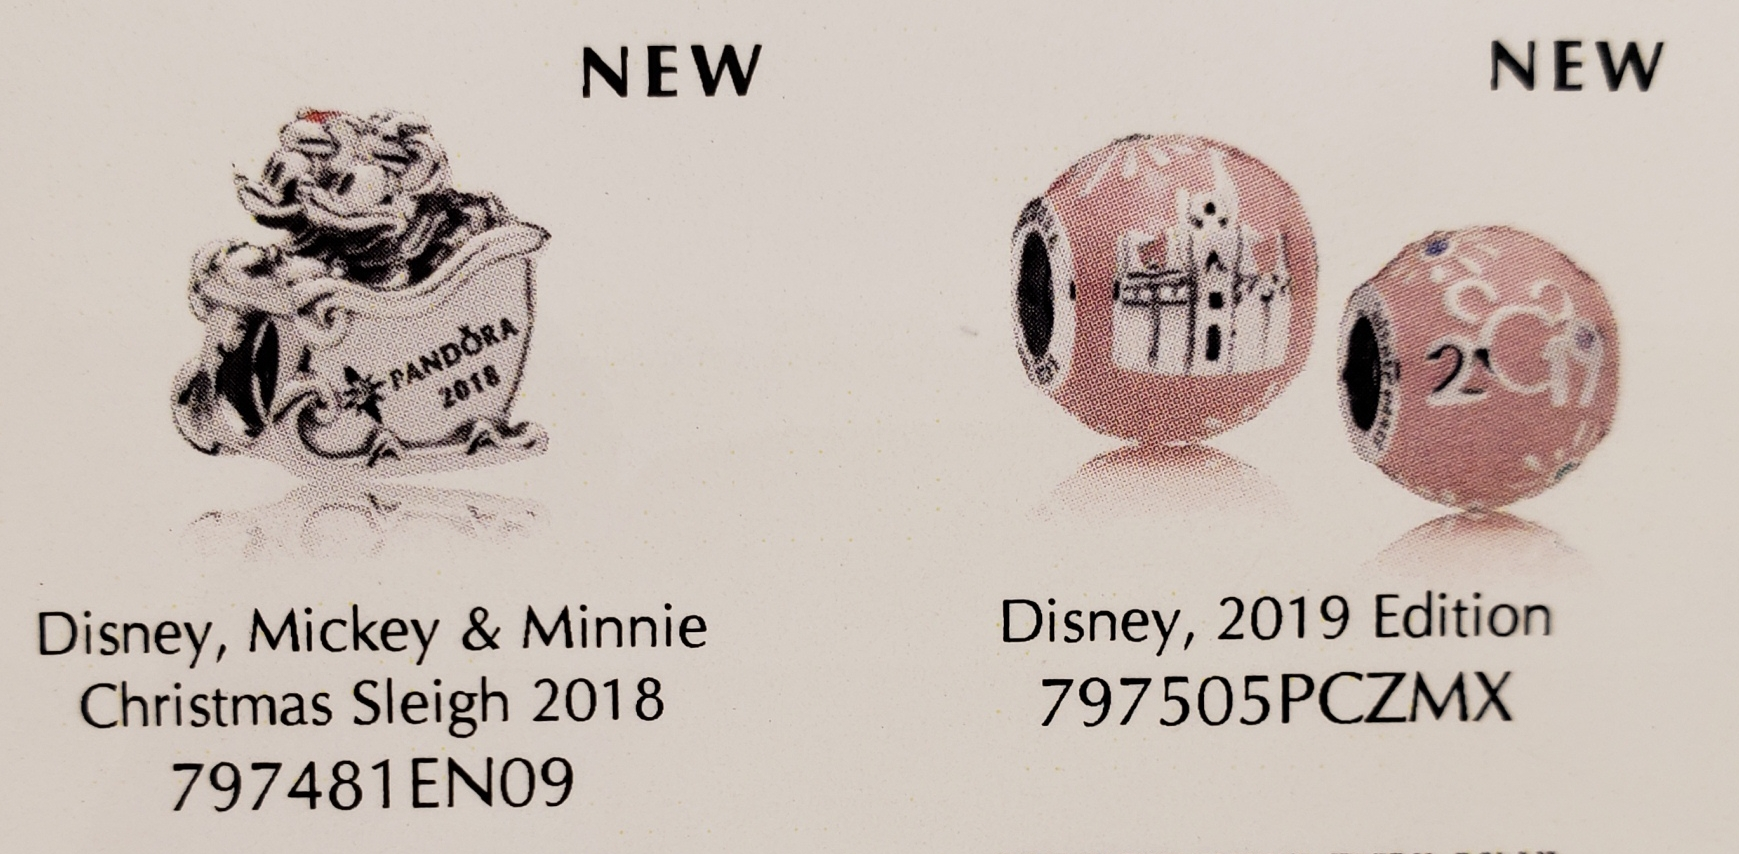 disney world park exclusive pandora charms 2019